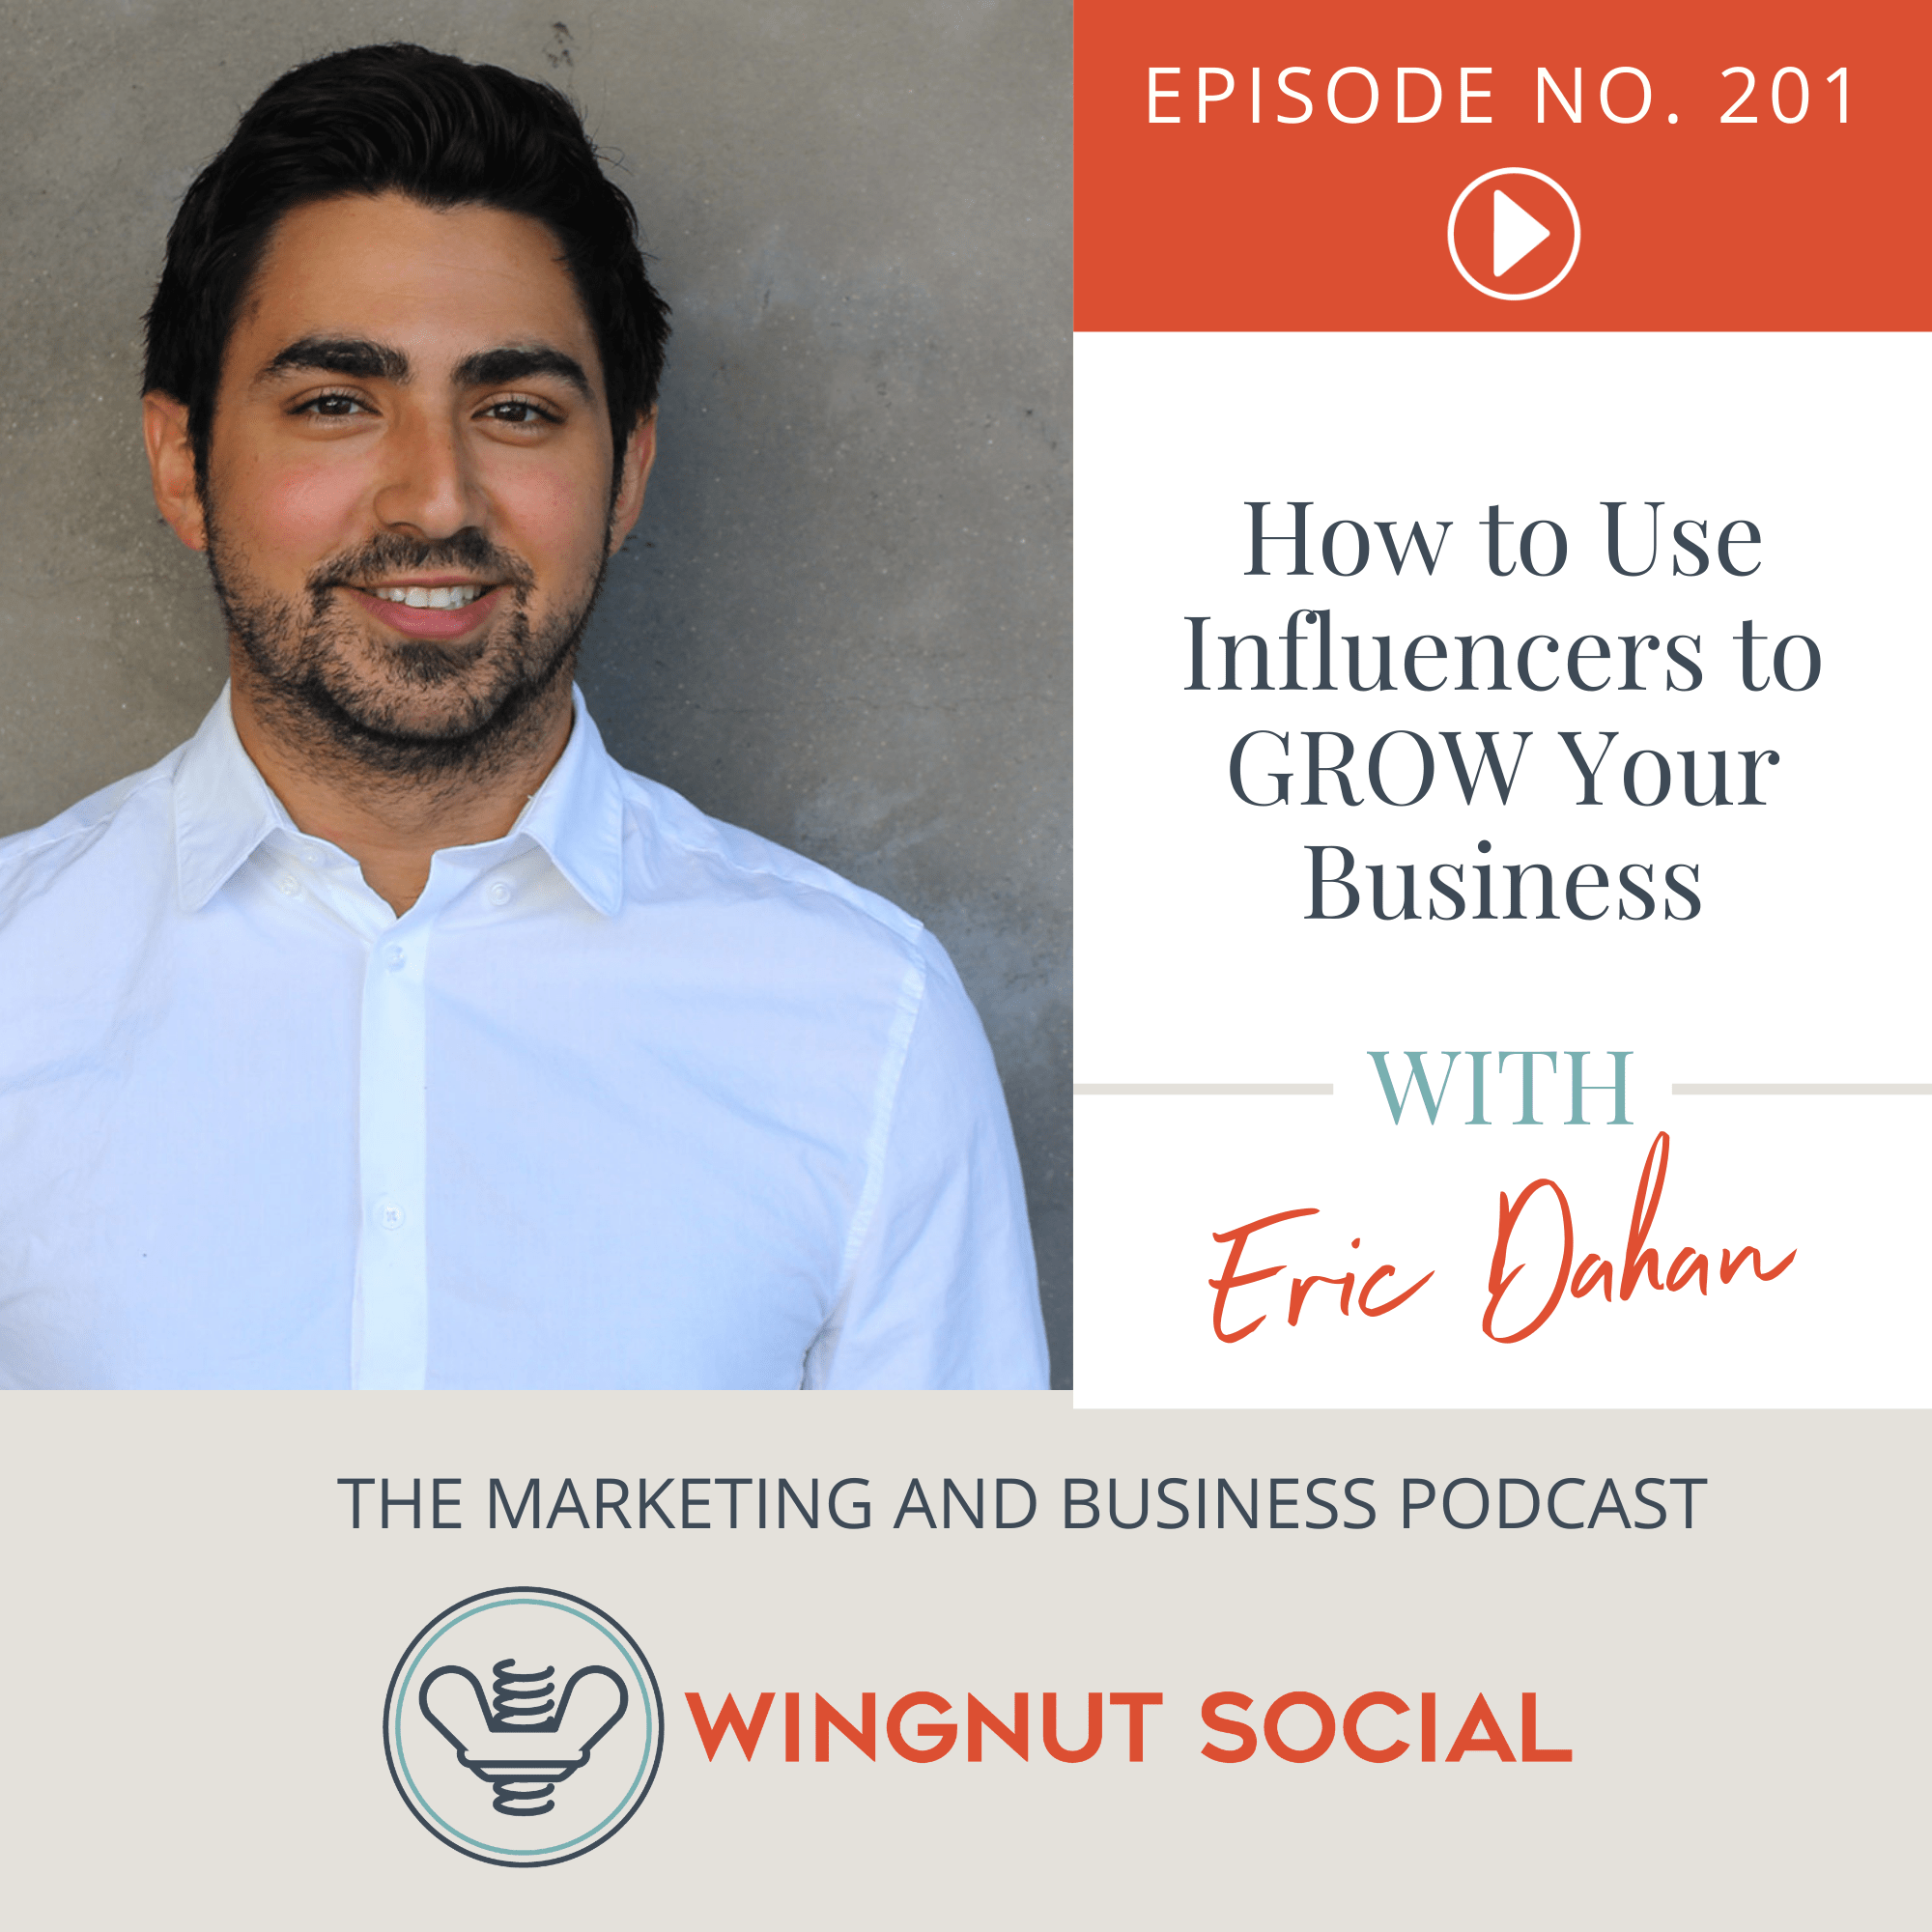 How to Use Influencers to GROW Your Business - Episode 201